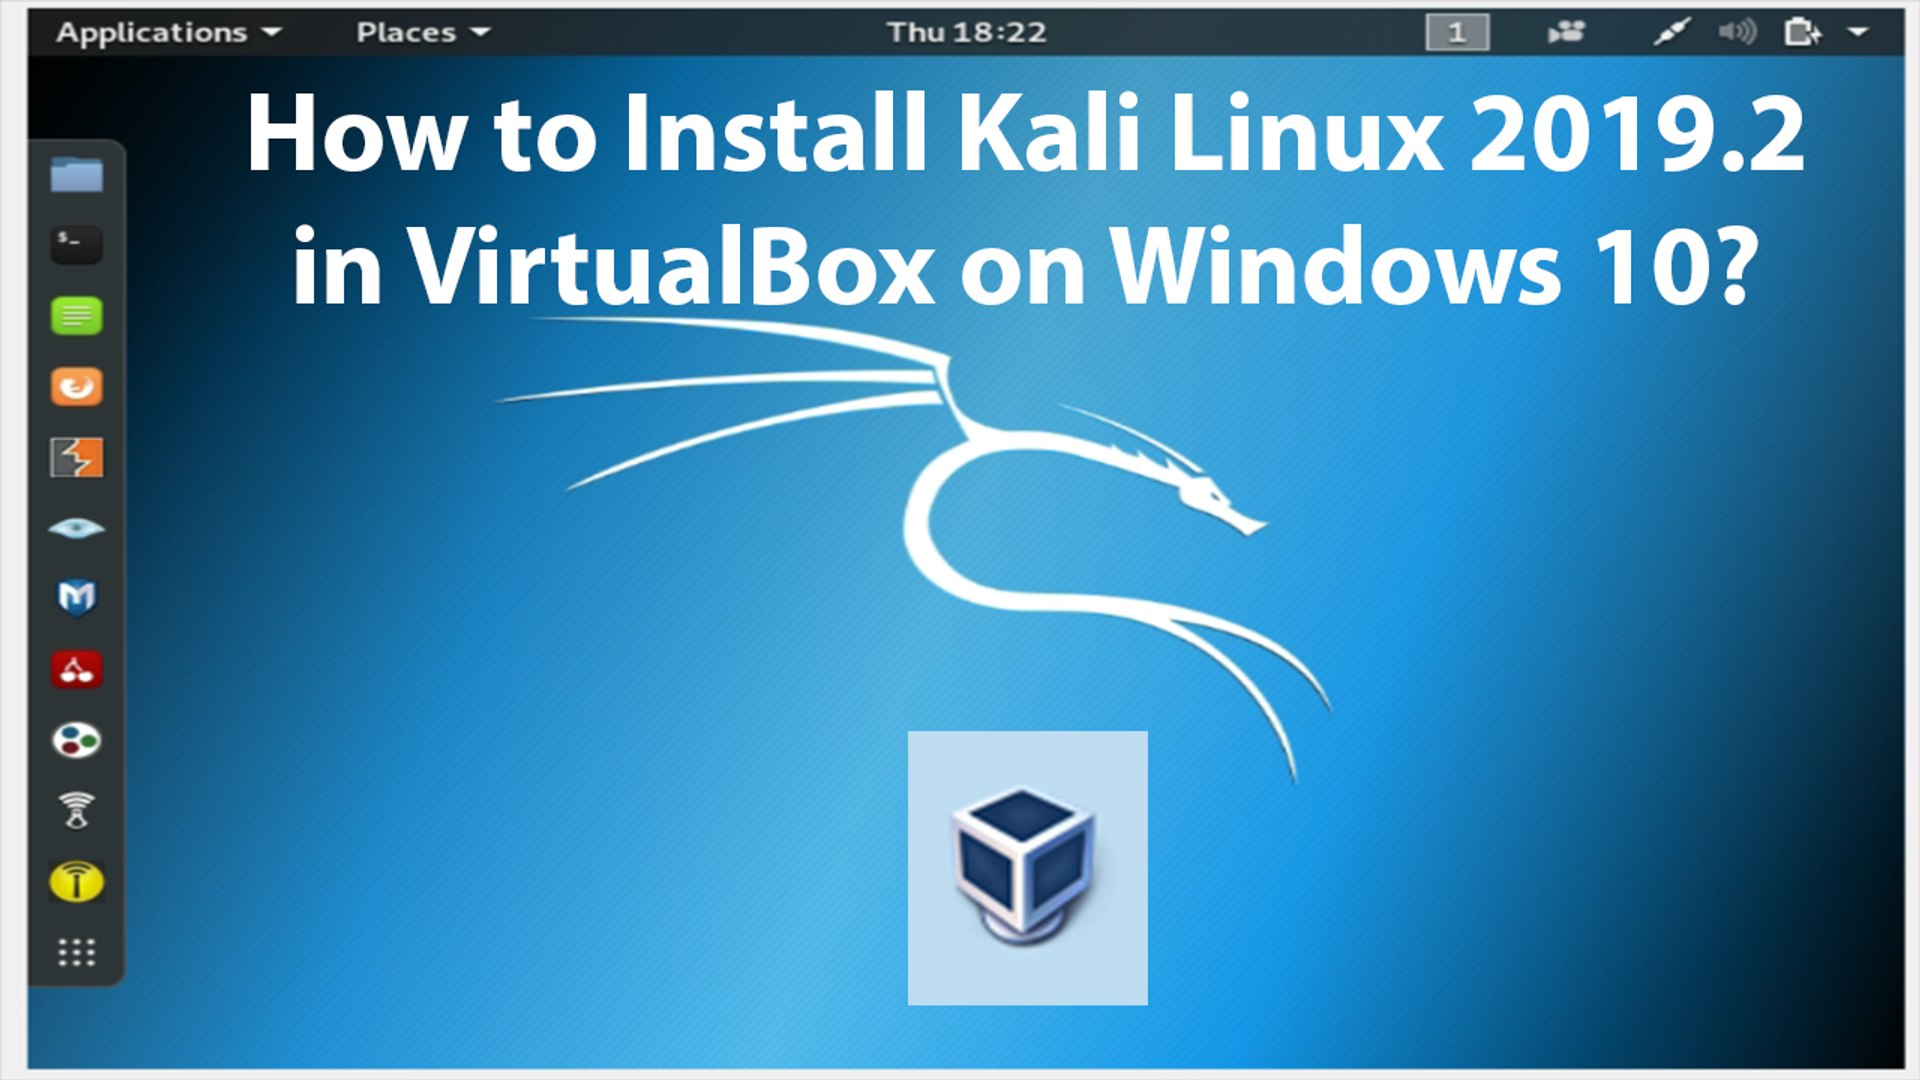 How to Install Kali Linux 2019 2 in VirtualBox on Windows 10?